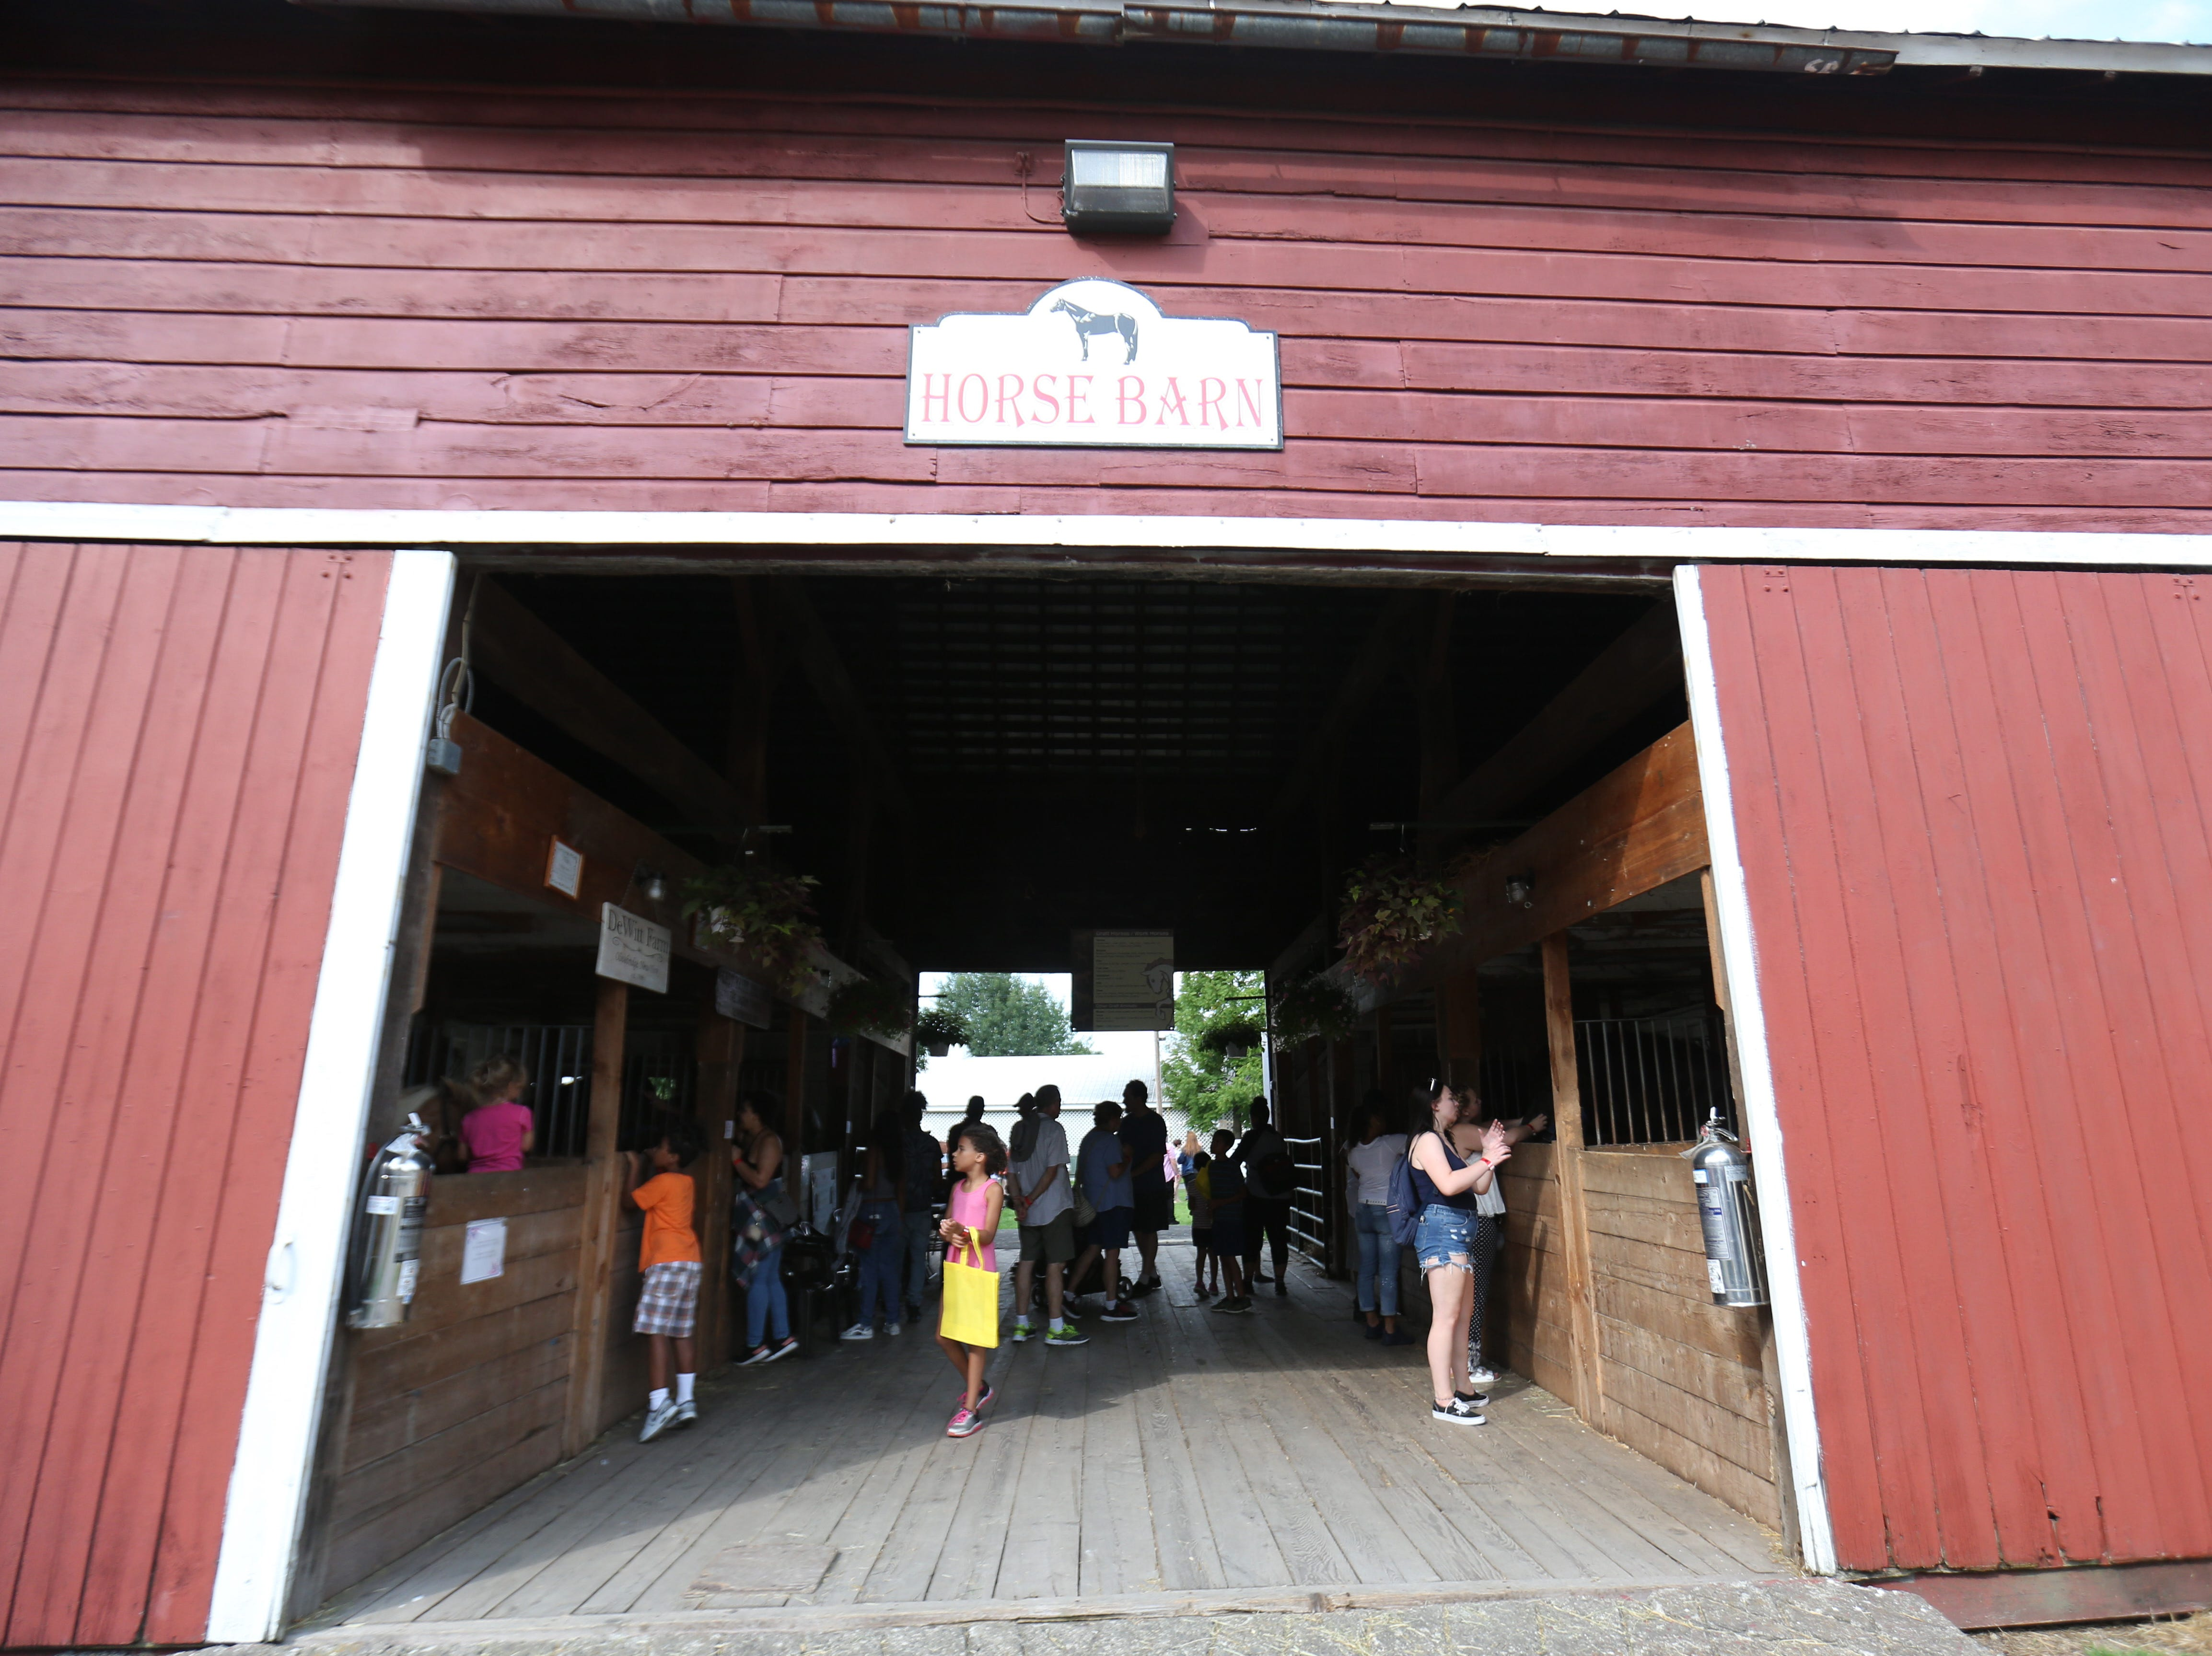 The horse stables at the Ulster County Fair in New Paltz on July 31, 2018.